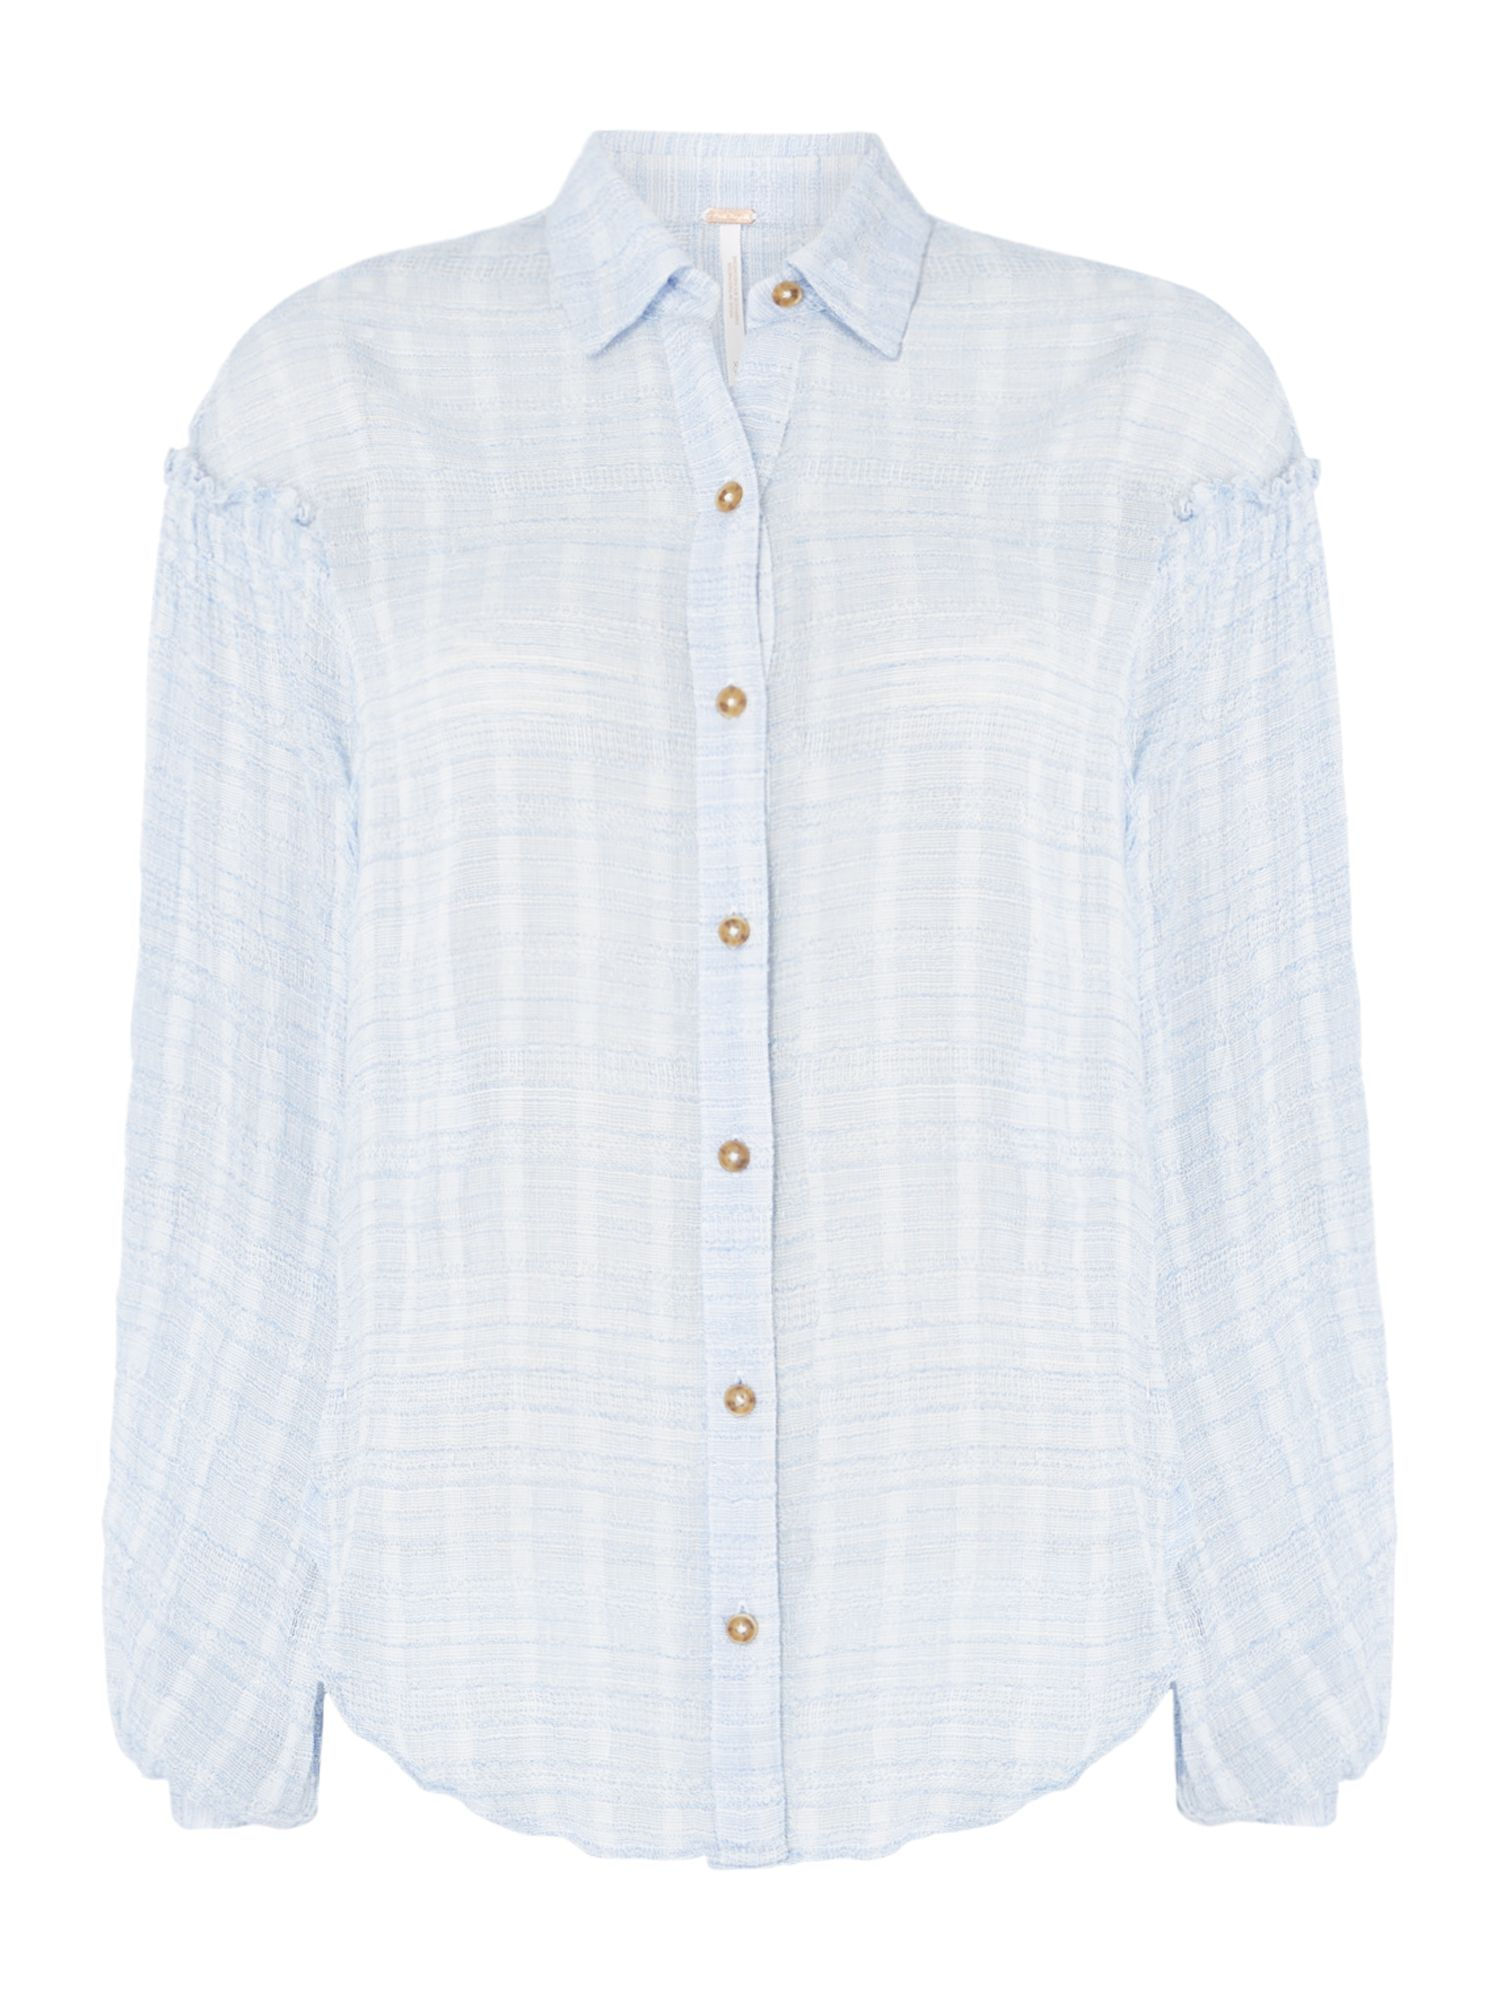 Free People Headed to the highlands Striped Shirt, Blue